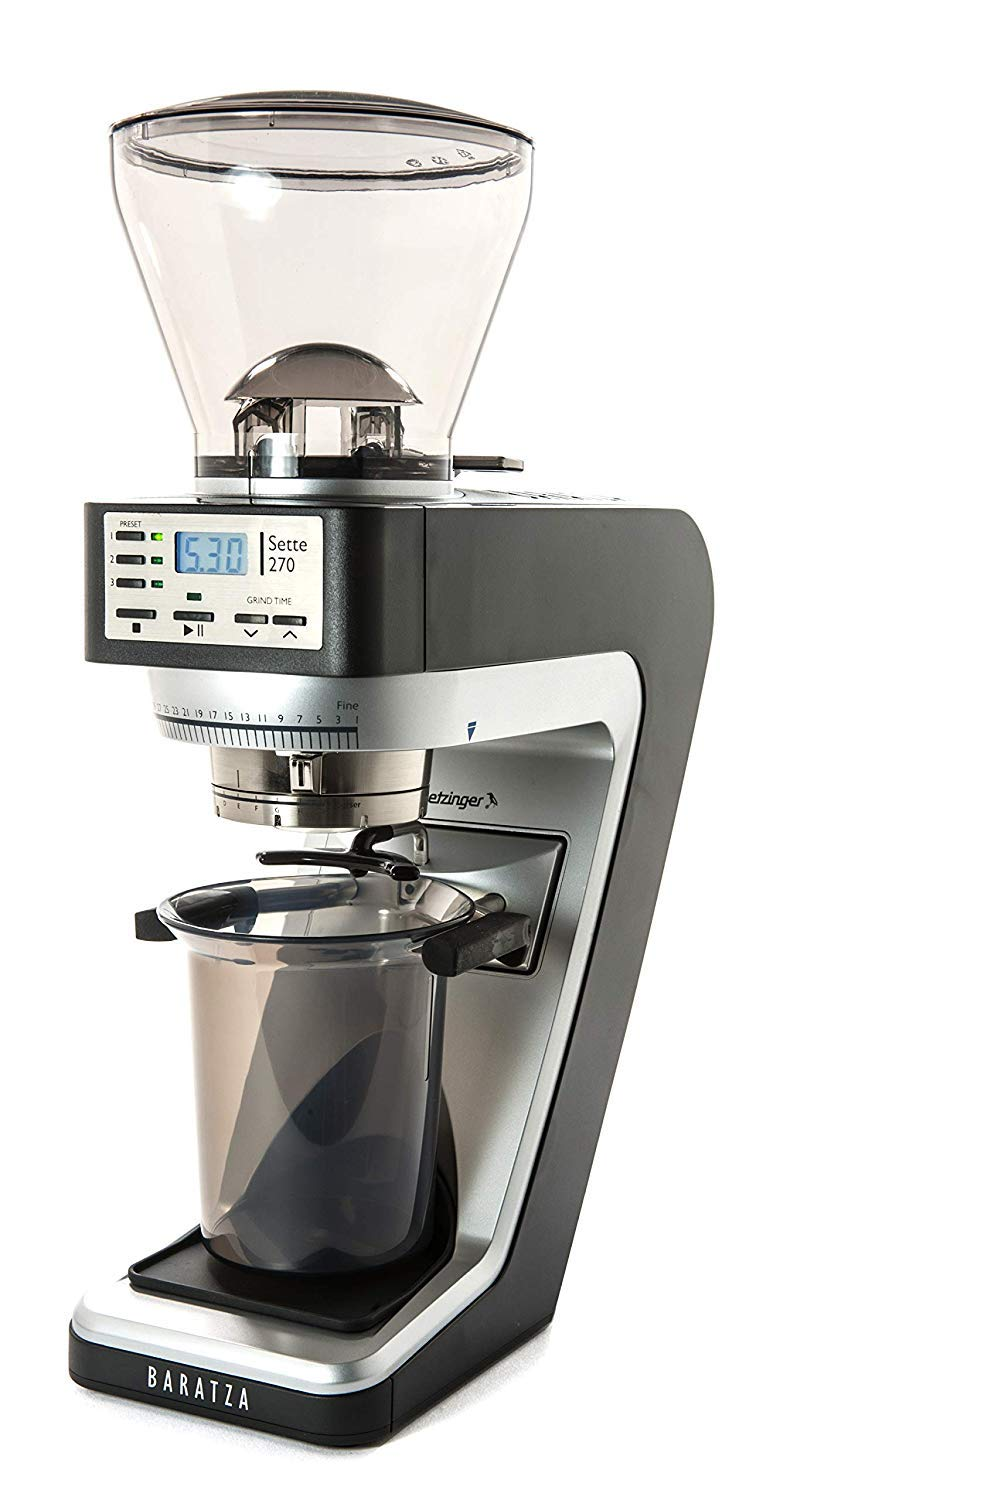 Baratza Sette 270 Conical Burr High Speed Espresso Grinder w/ 270 Grind Settings by Baratza